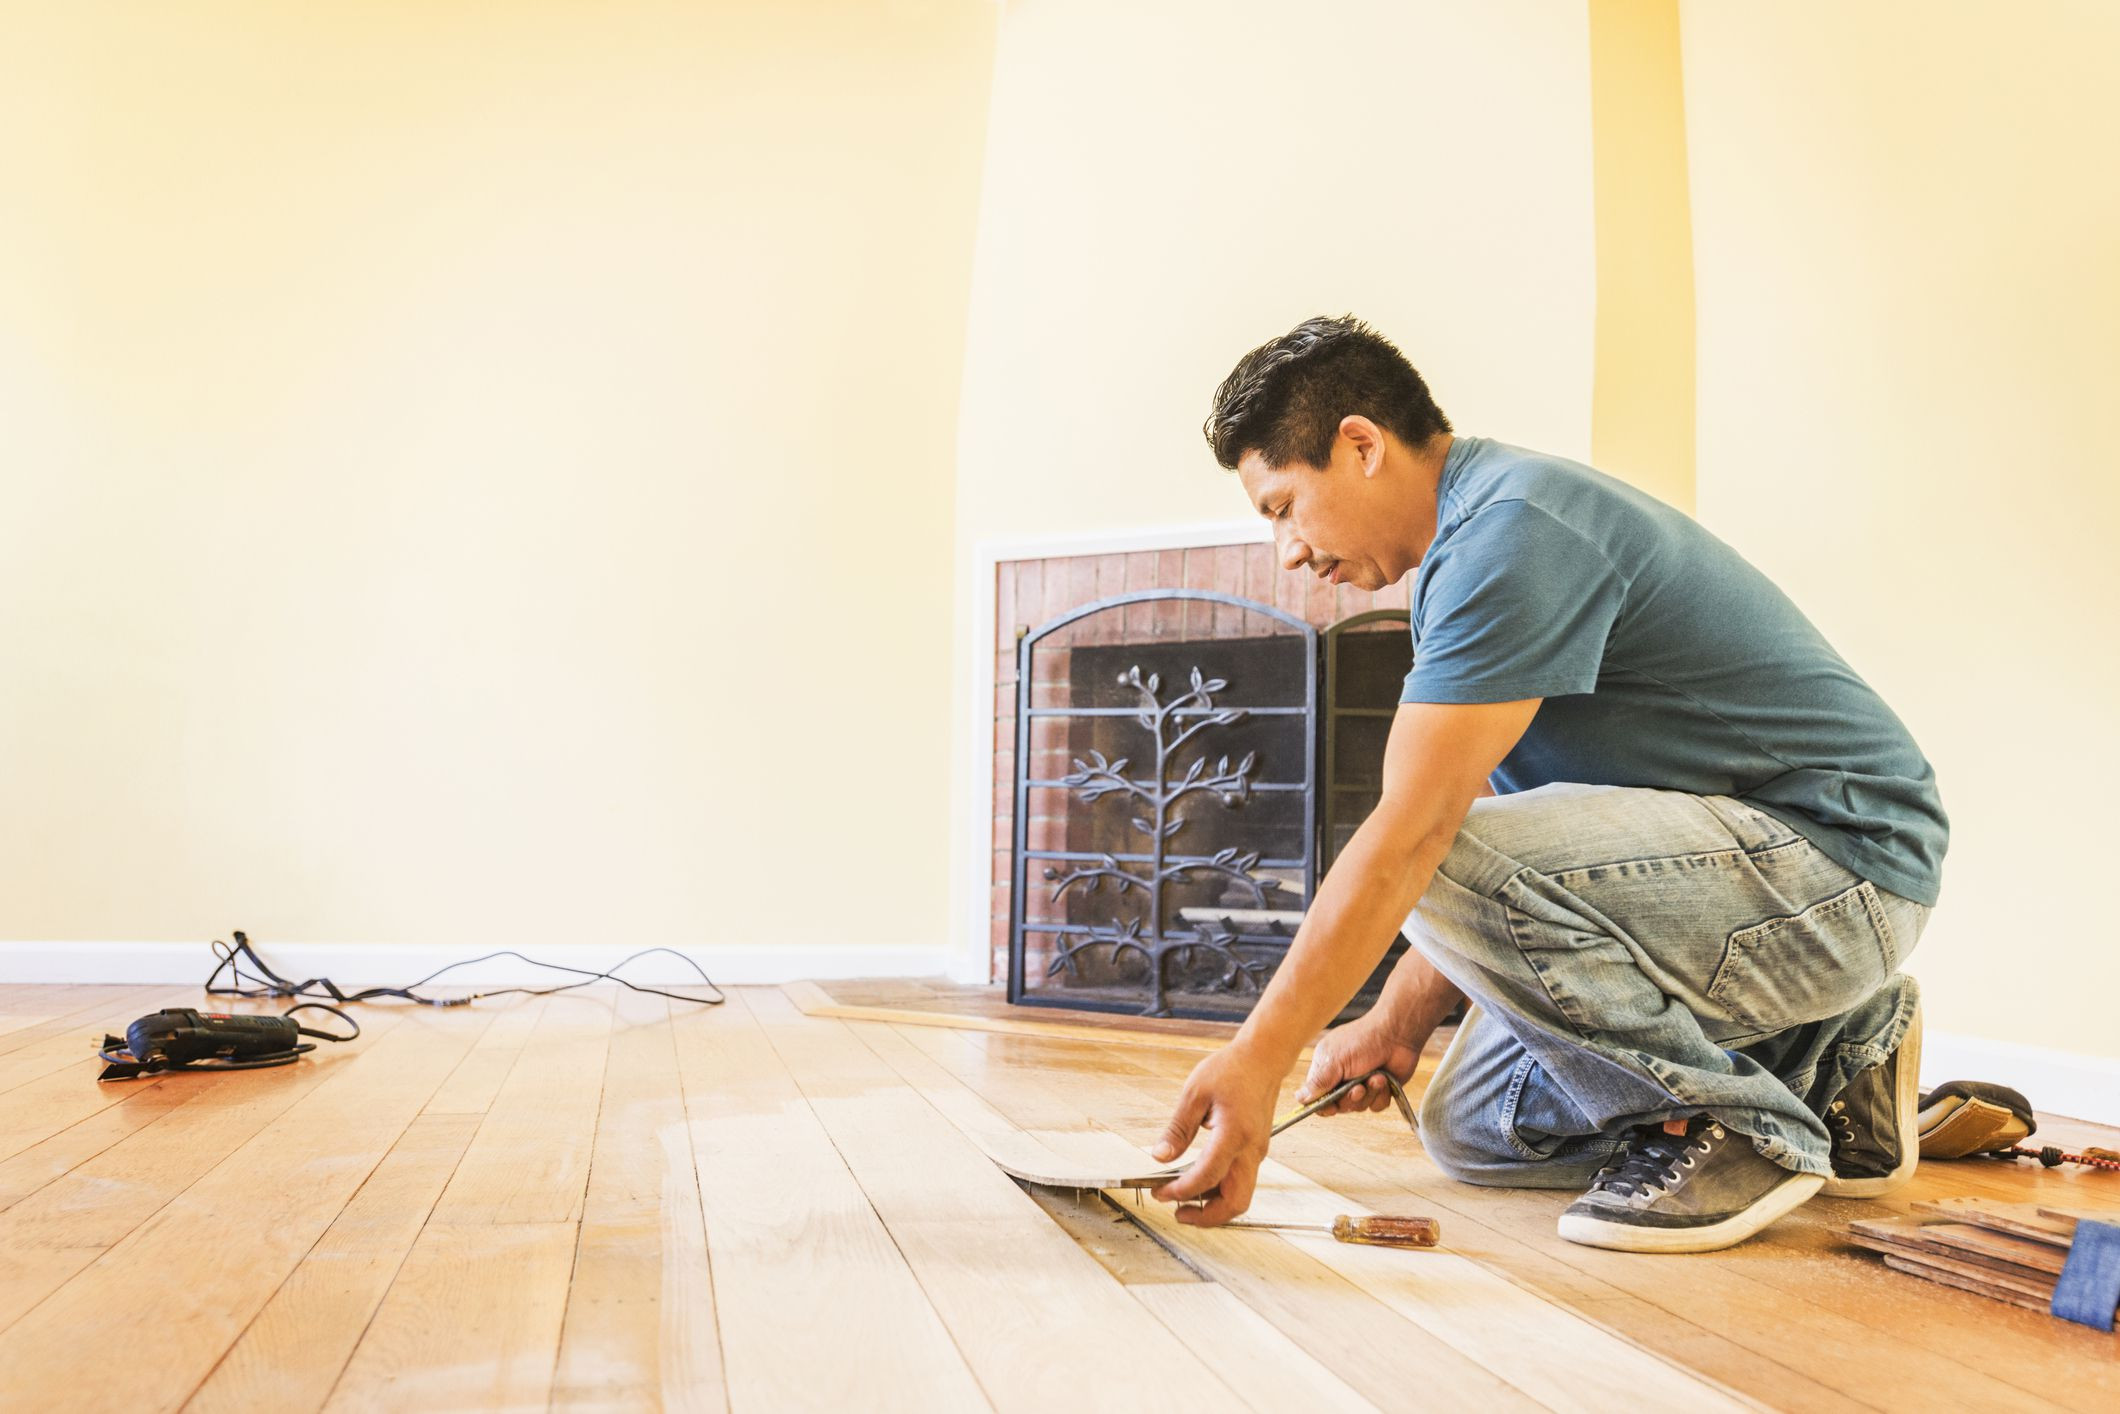 hardwood floor installation labor cost per square foot of hardwood installer how to hire and what to expect for installing wood flooring 592016327 57af51a23df78cd39cfa08d9